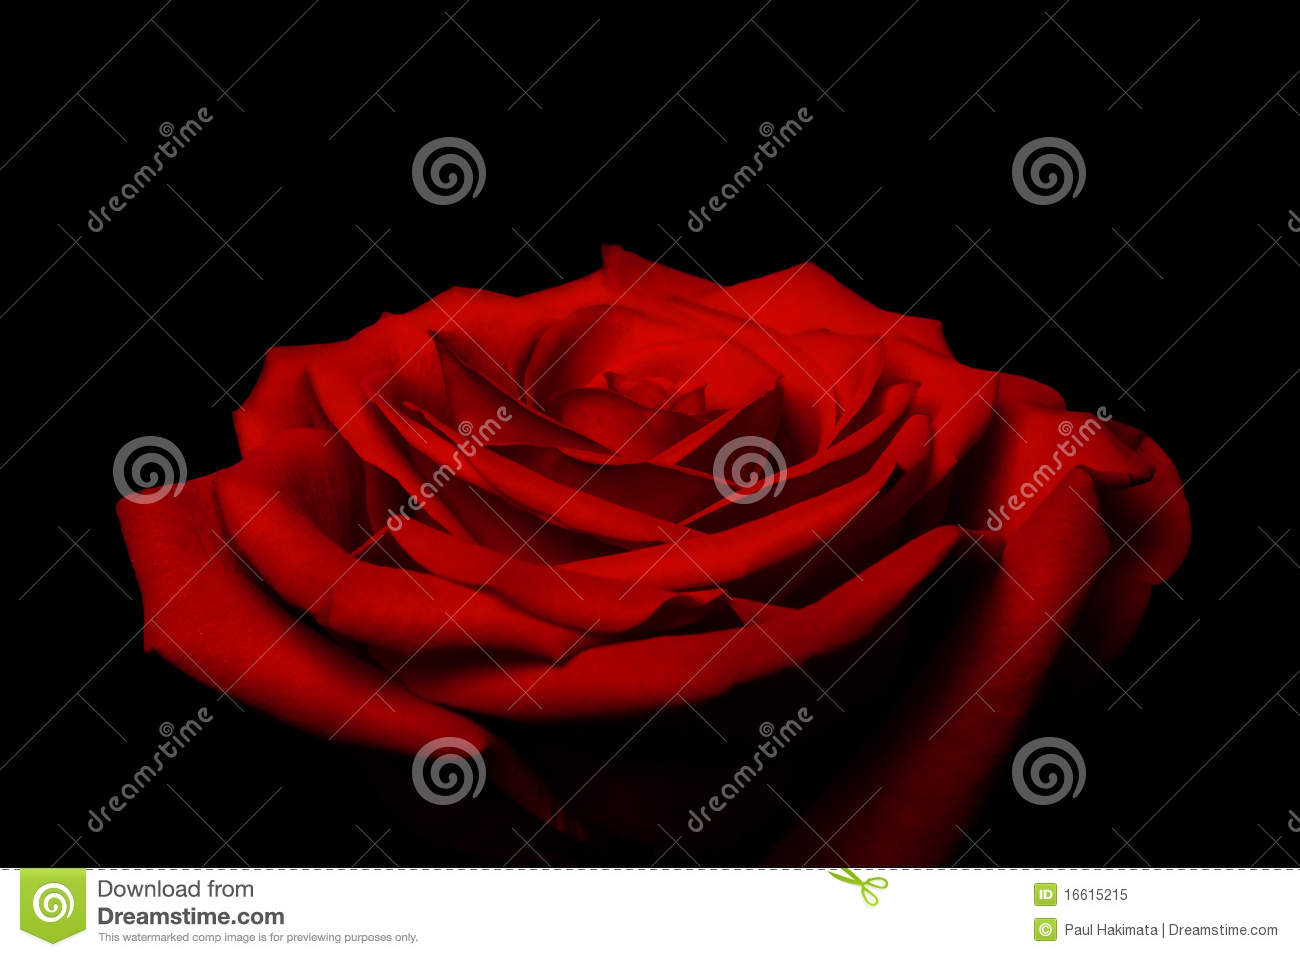 Layers of love petals - red rose